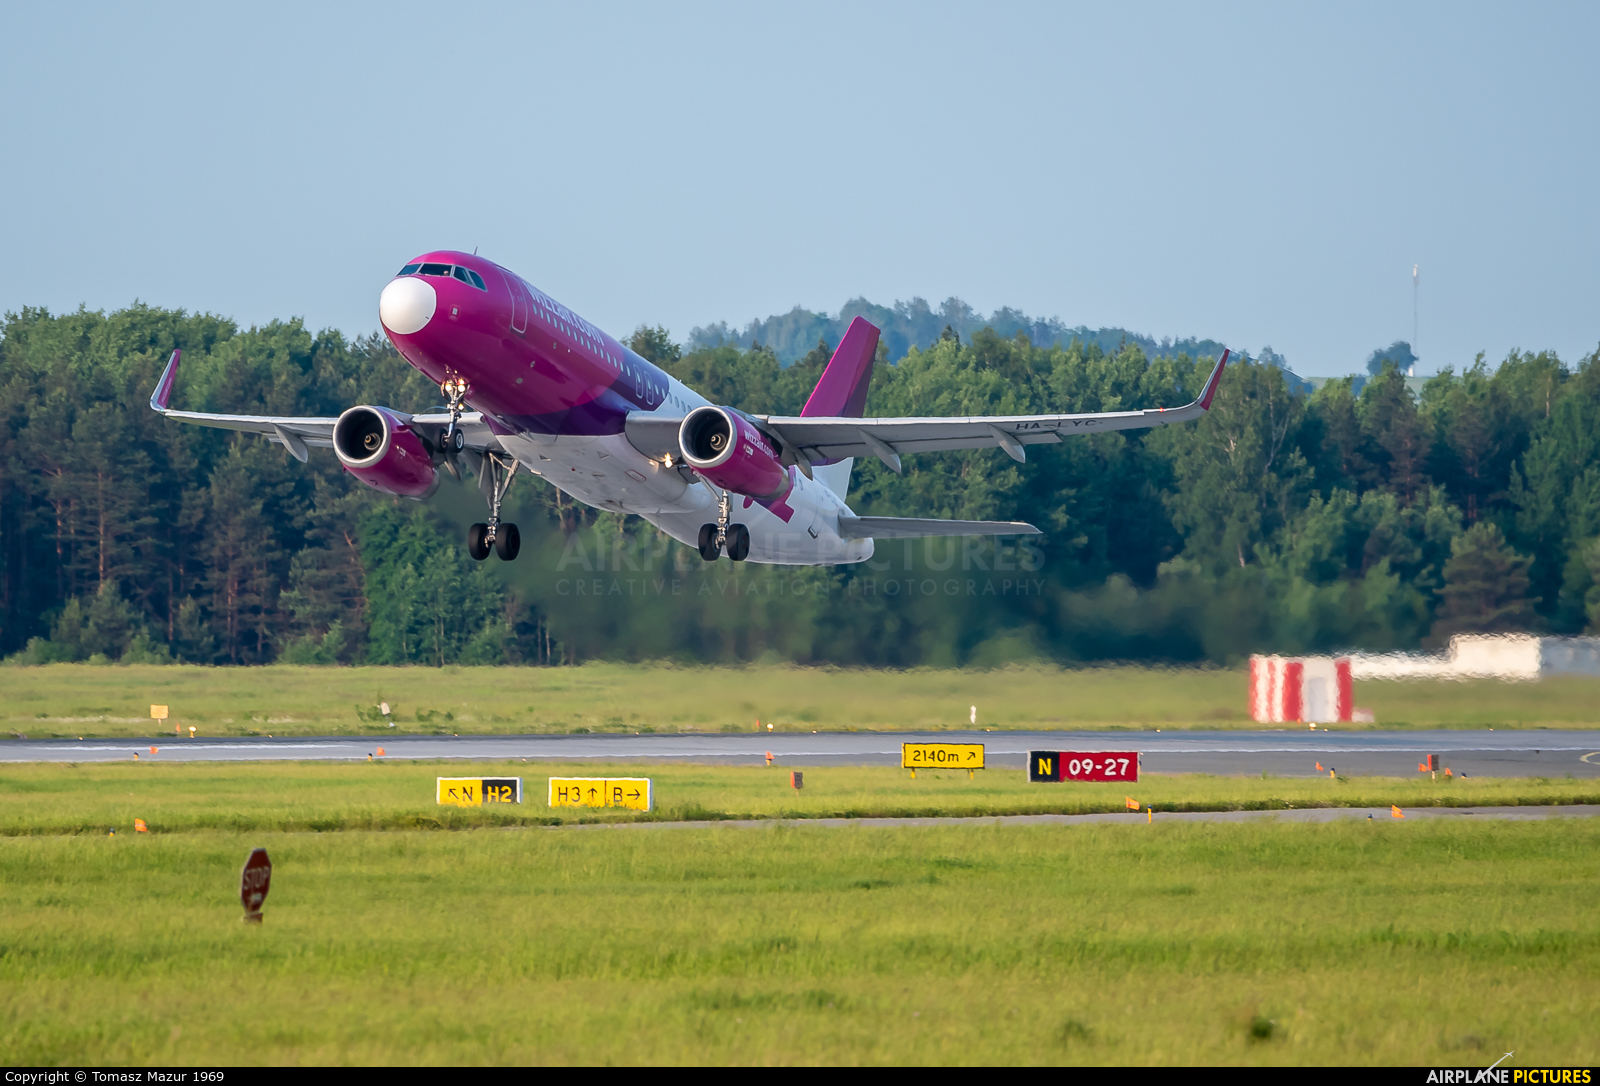 Wizz Air HA-LYC aircraft at Katowice - Pyrzowice